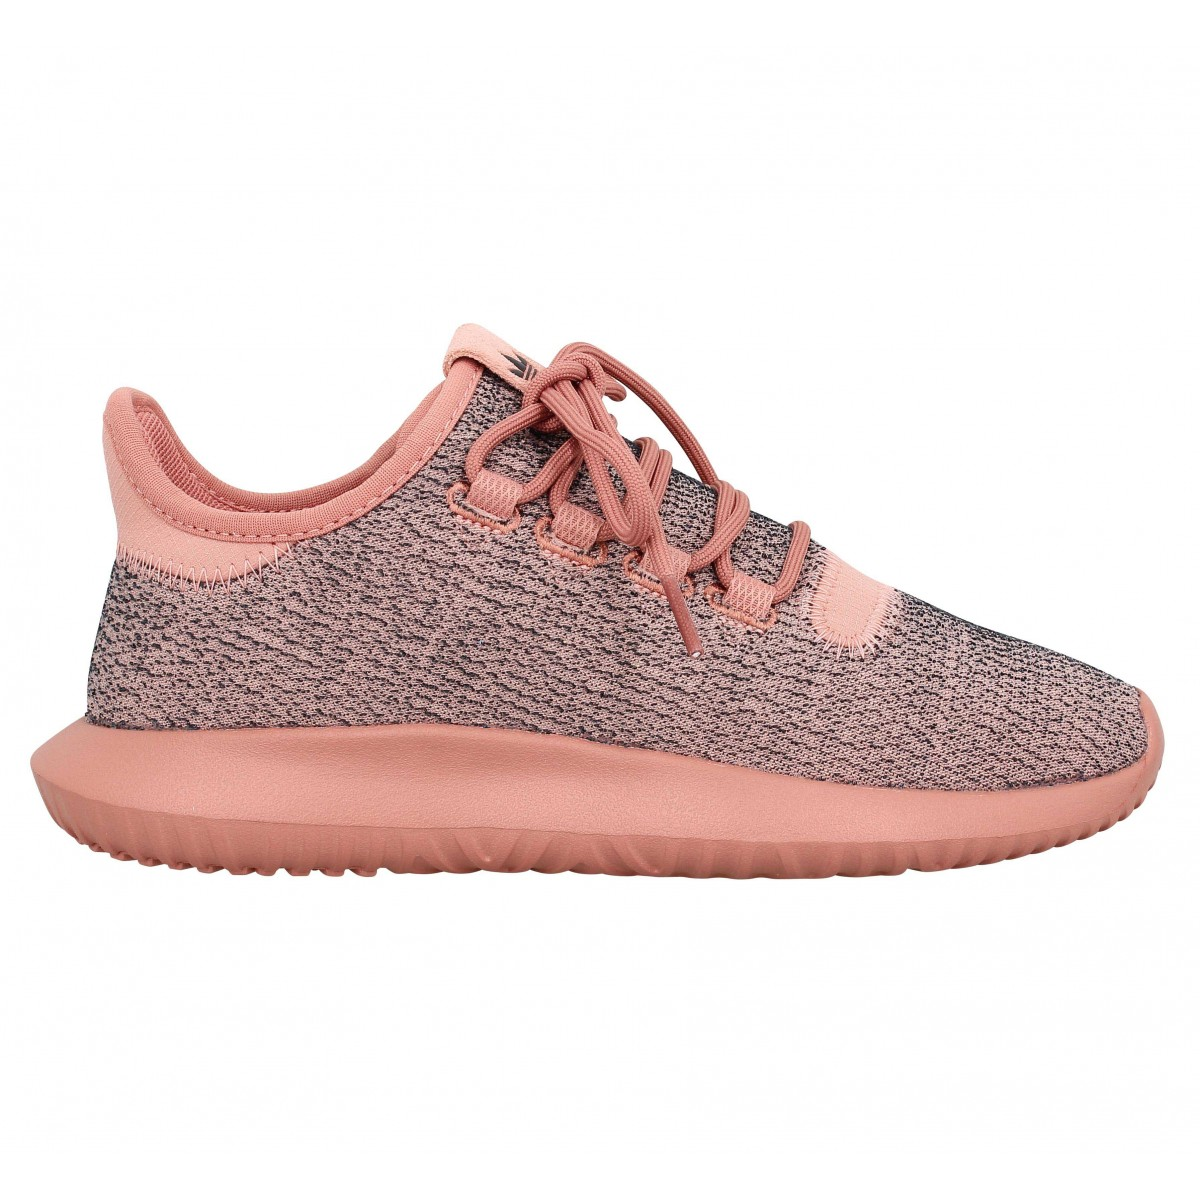 adidas tubular shadow toile femme rose femme fanny. Black Bedroom Furniture Sets. Home Design Ideas